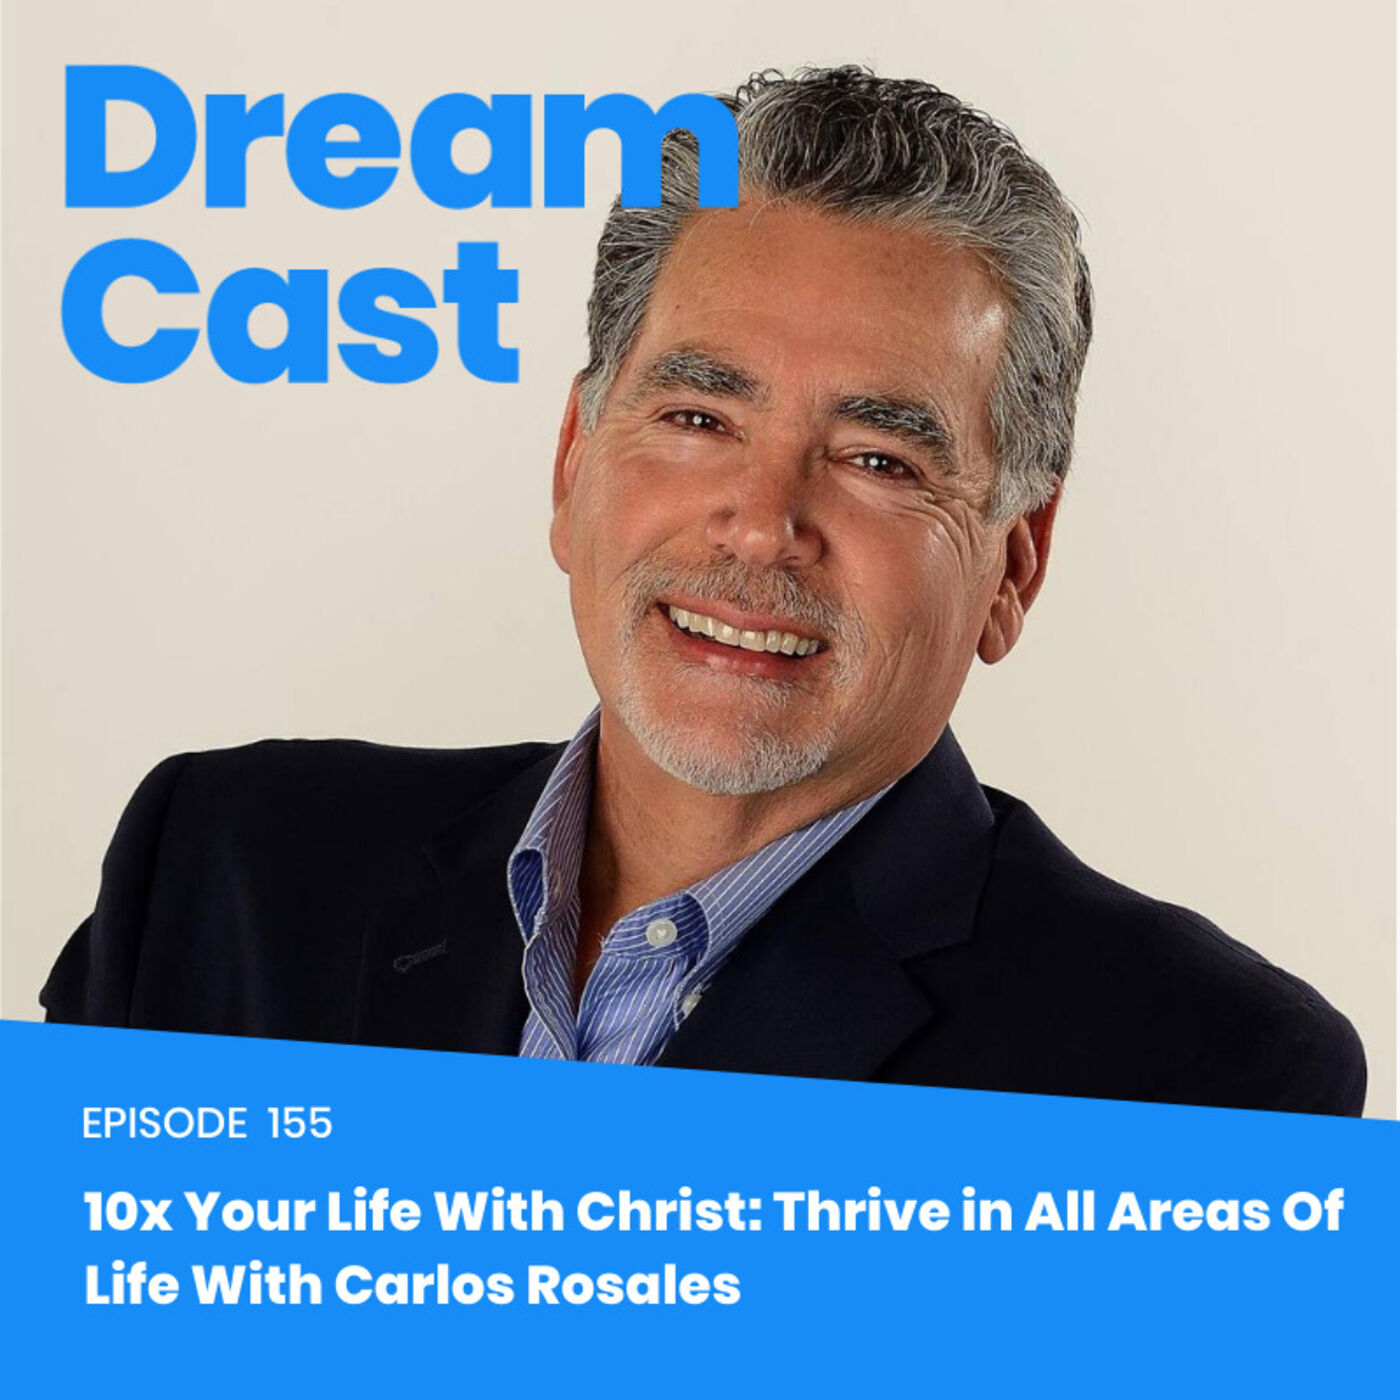 Episode 155 - 10x Your Life With Christ: Thrive in All Areas Of Life With Carlos Rosales